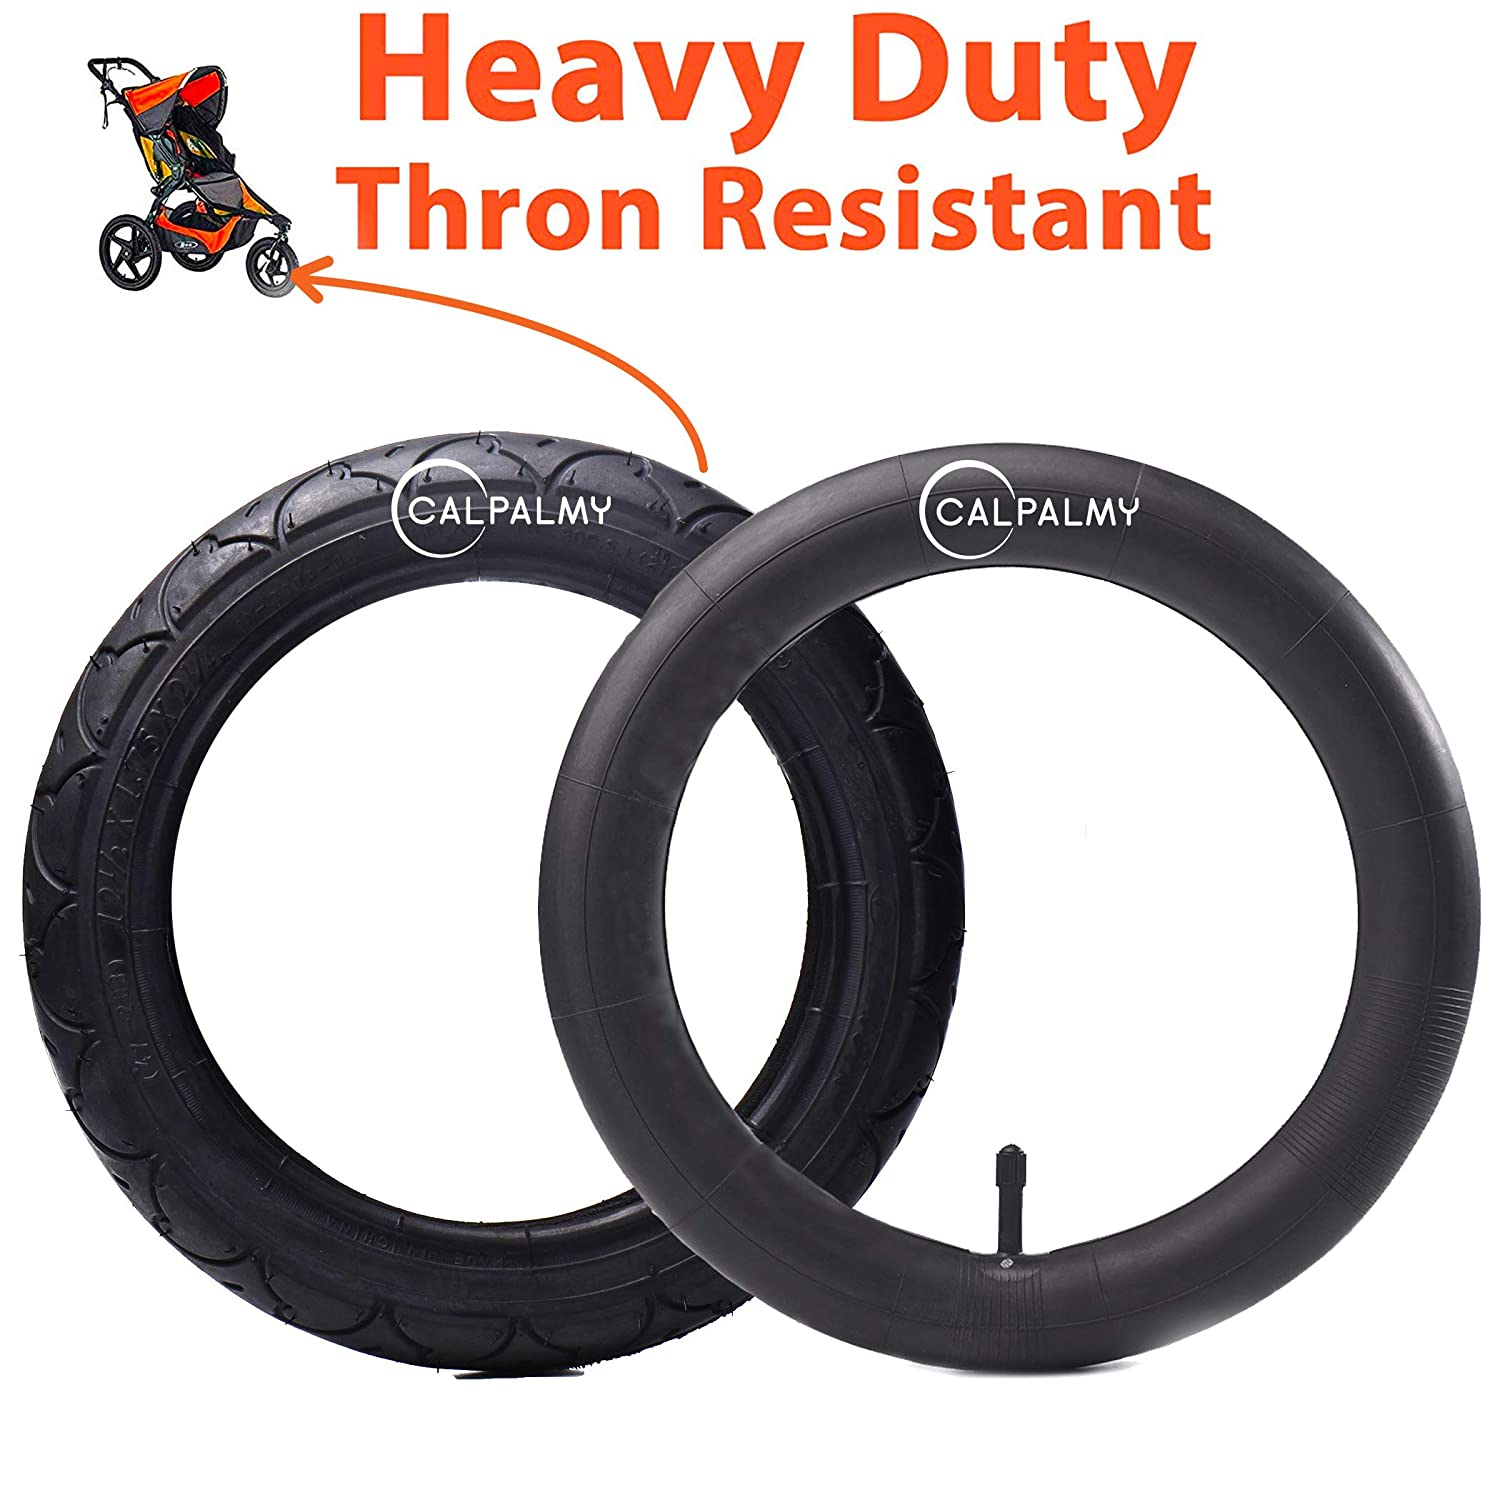 12.5'' Front Wheel Replacement Tire and Tube for BoB Revolution SE/Pro/Flex - Made from BPA/Latex Free Premium Quality Butyl Rubber 71BHwW38yOL